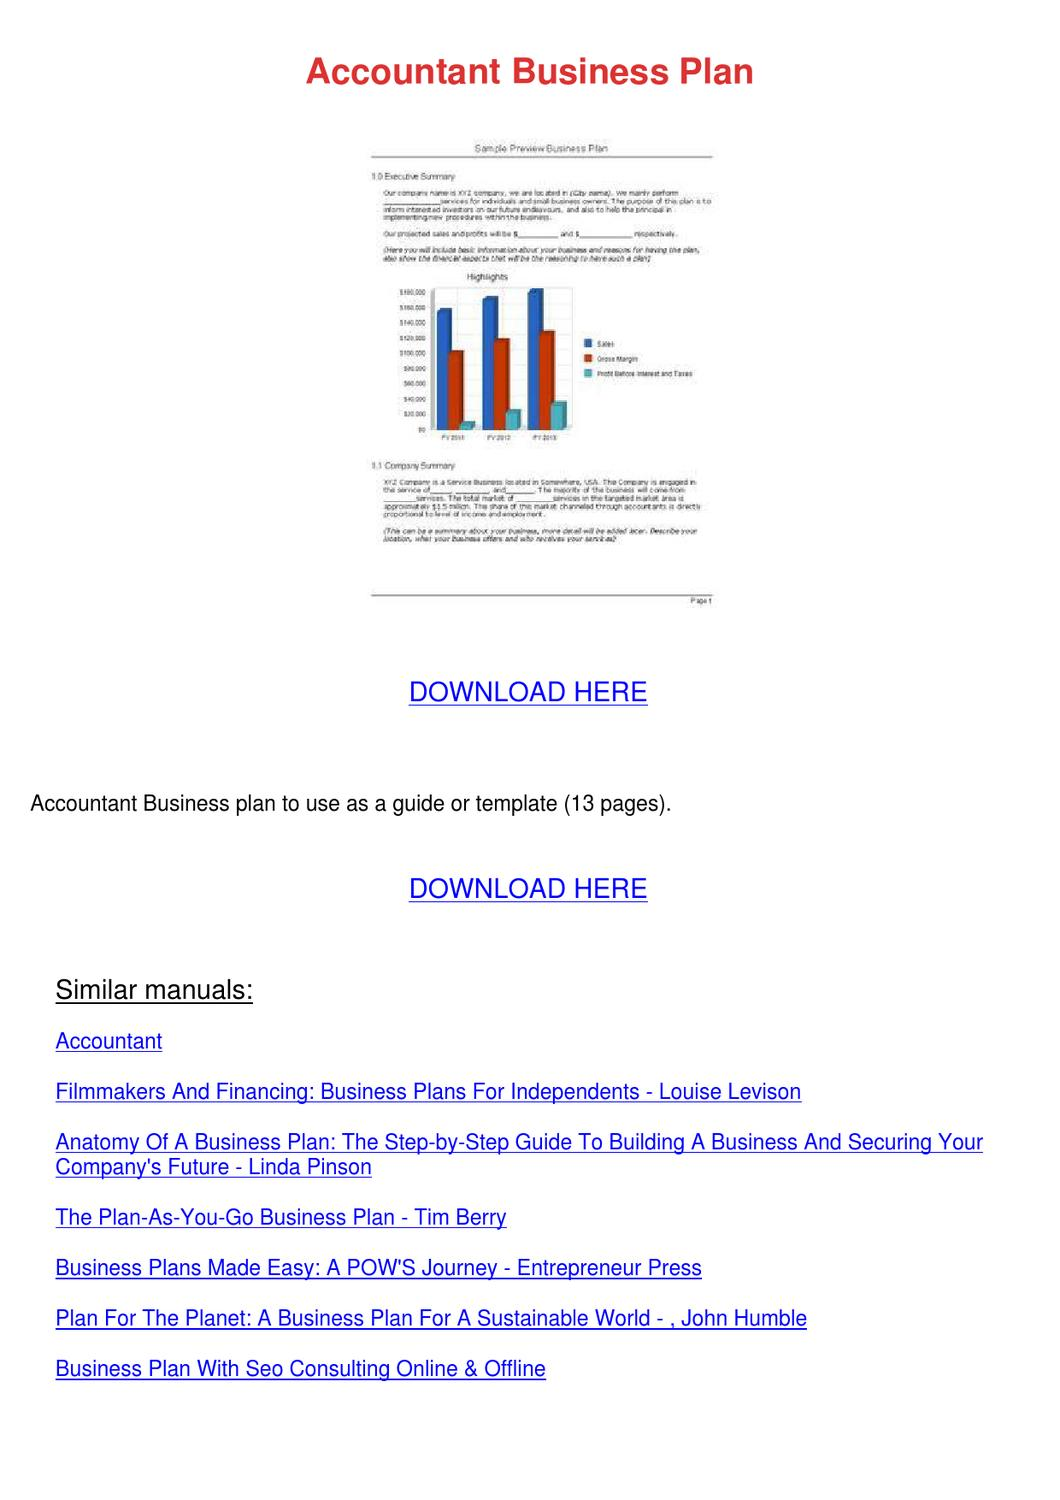 Accountant Business Plan by NellMosher - issuu